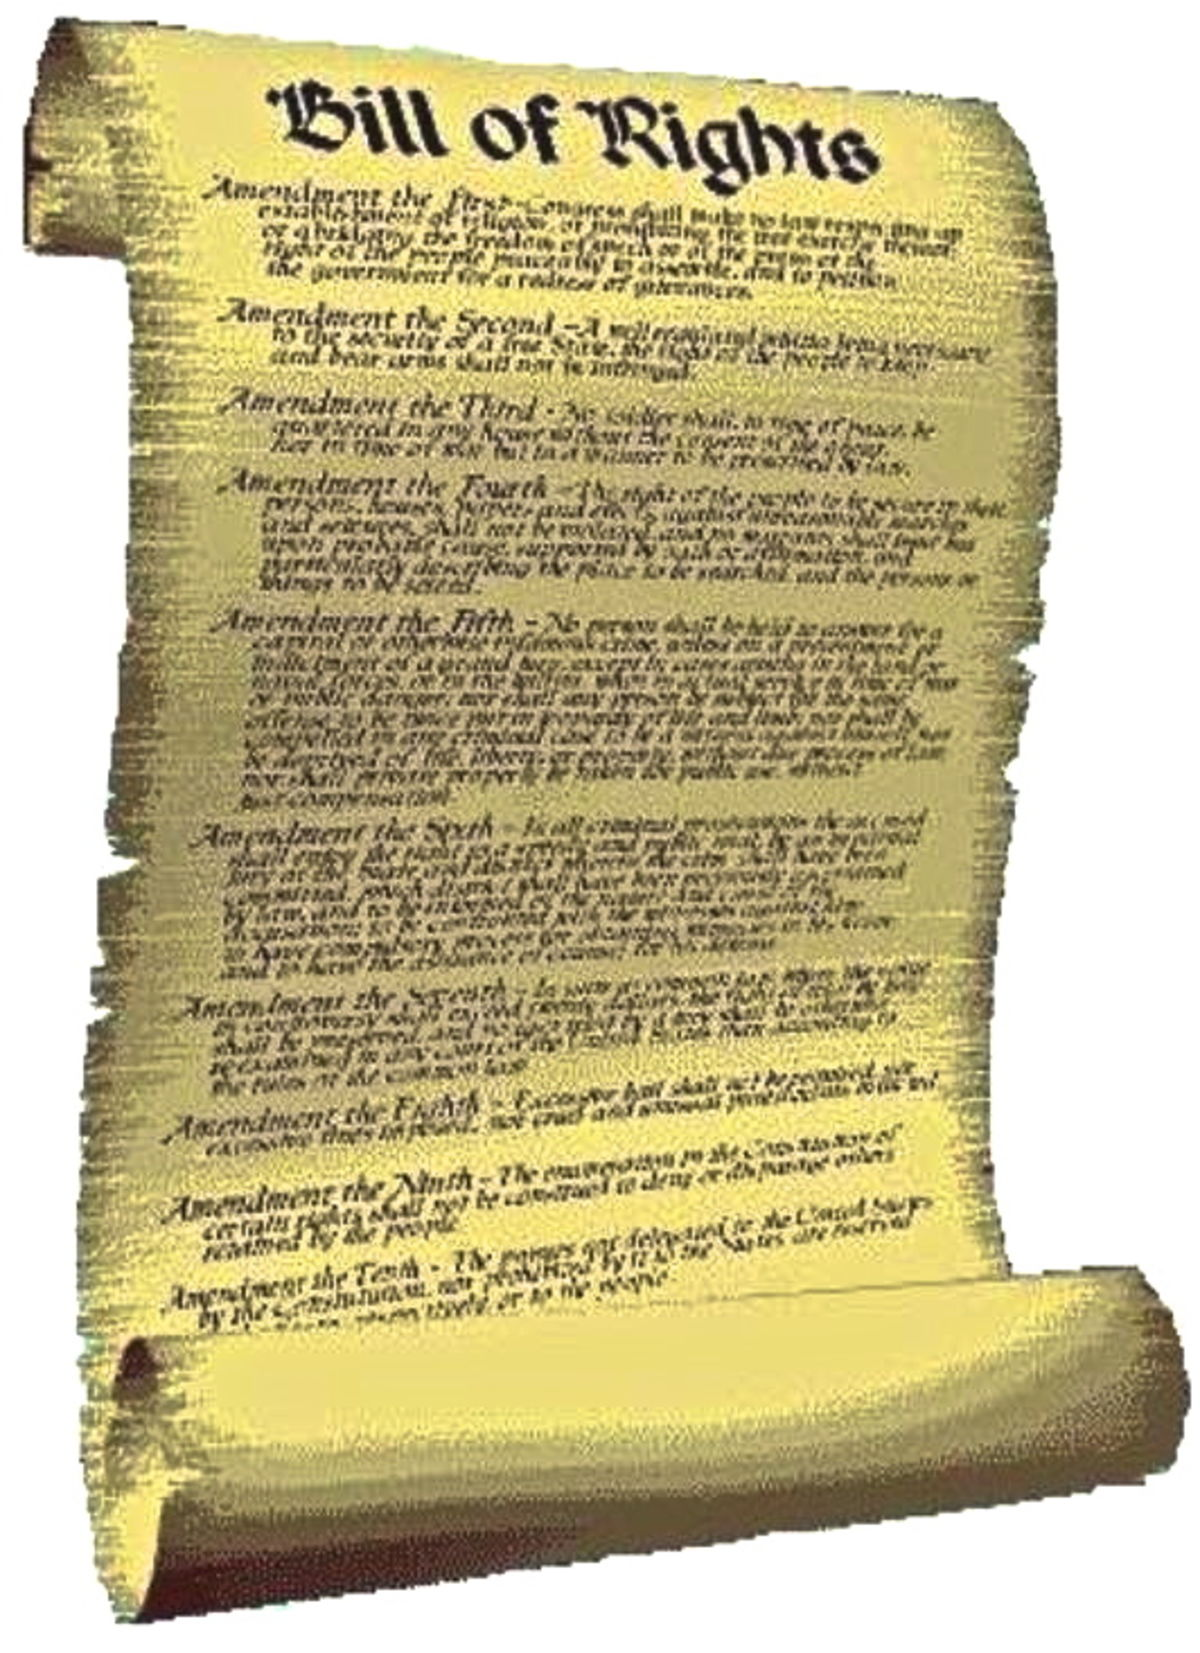 Four Common Misconceptions About the Bill of Rights   Psychology Today